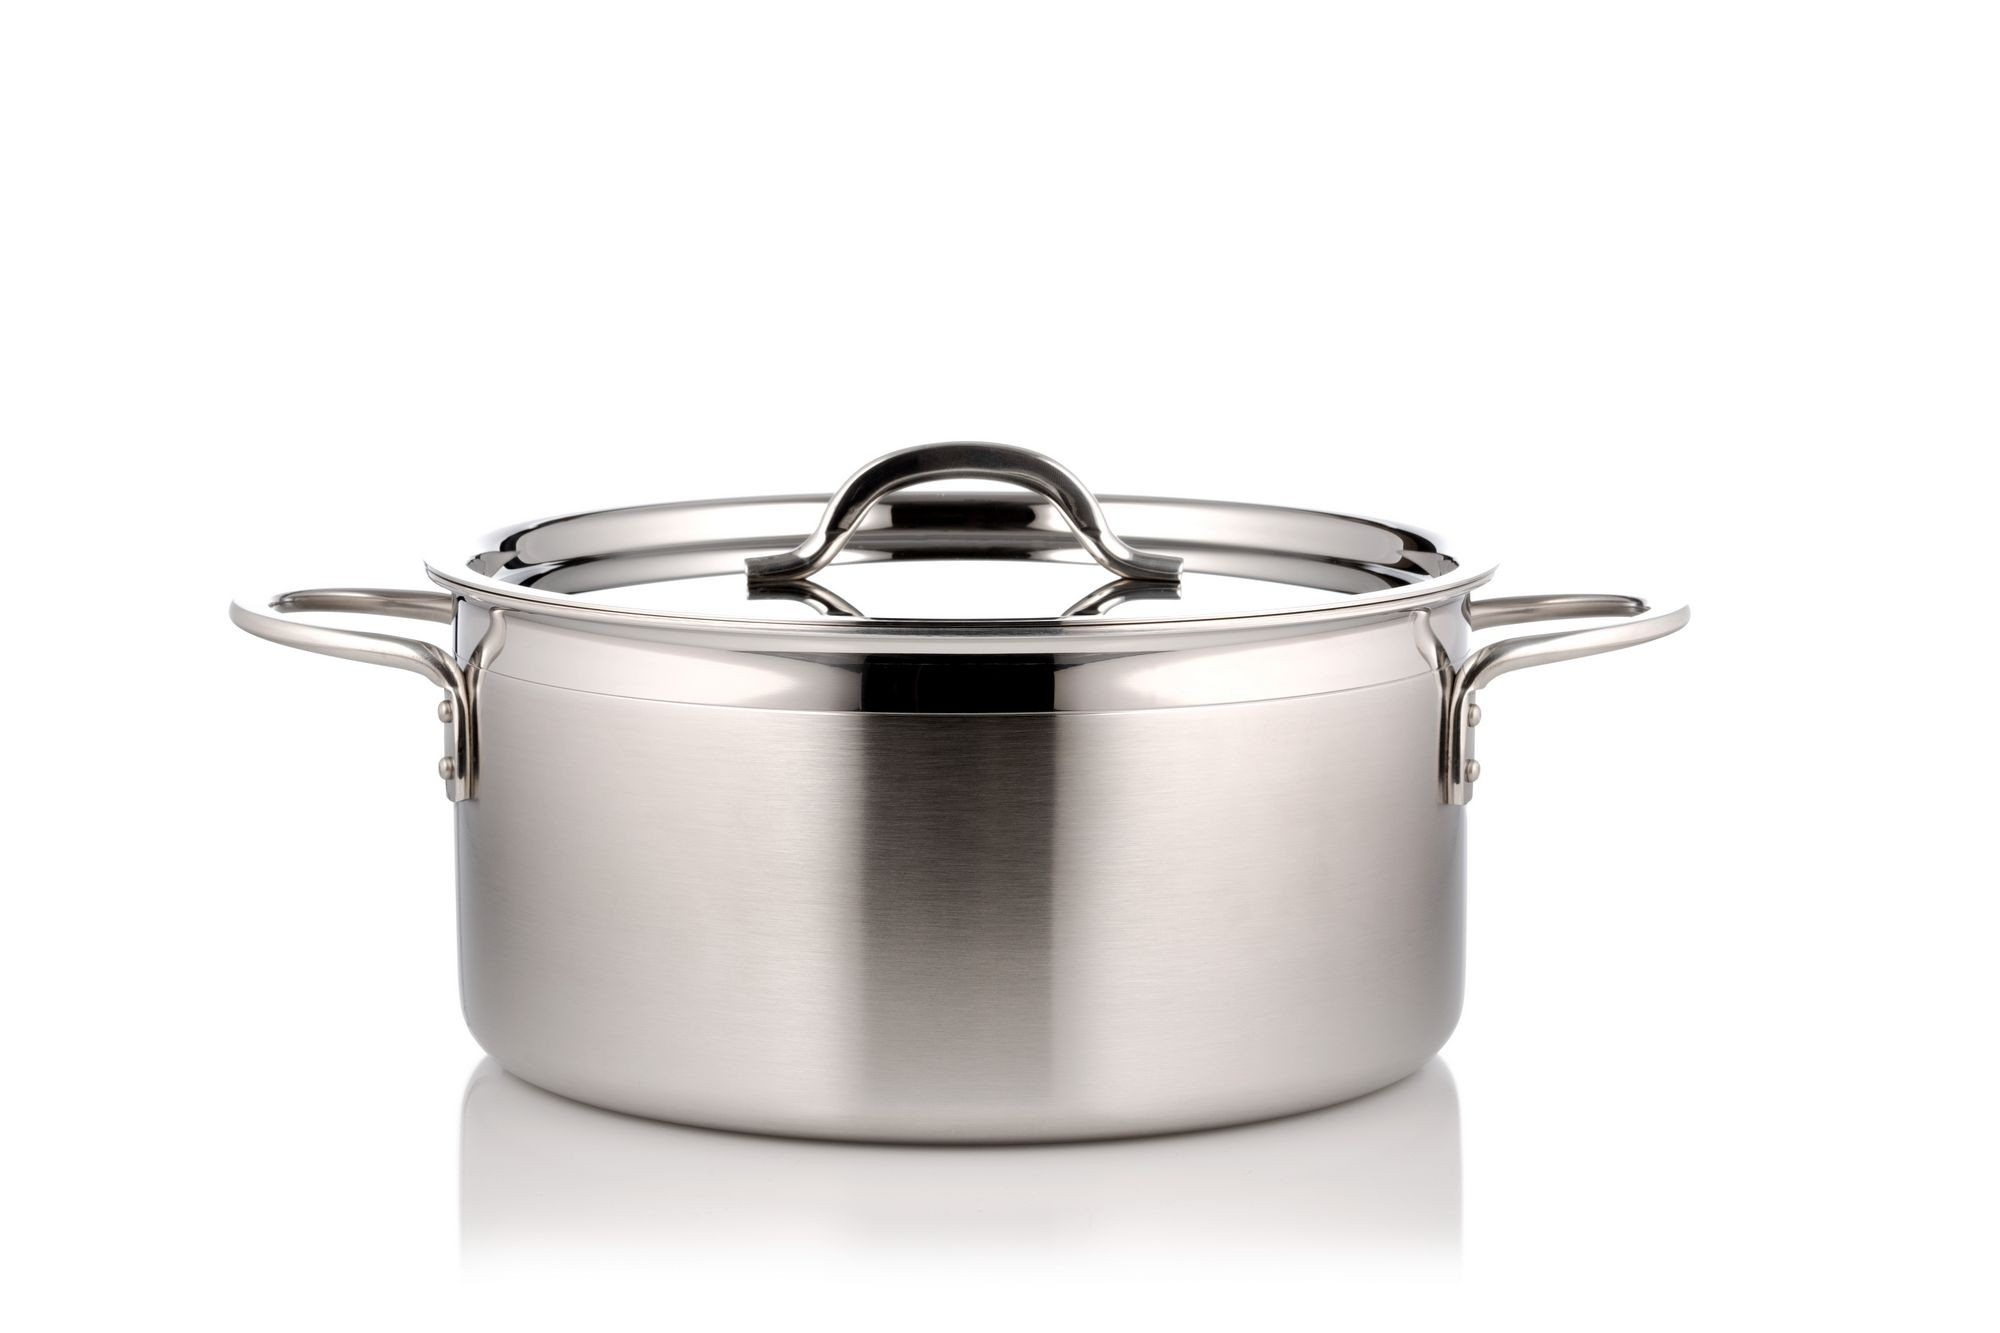 Bon Chef 60303-2ToneSS Country French Two Tone Stainless Steel Pot with Cover, 5 Qt. 22 oz.